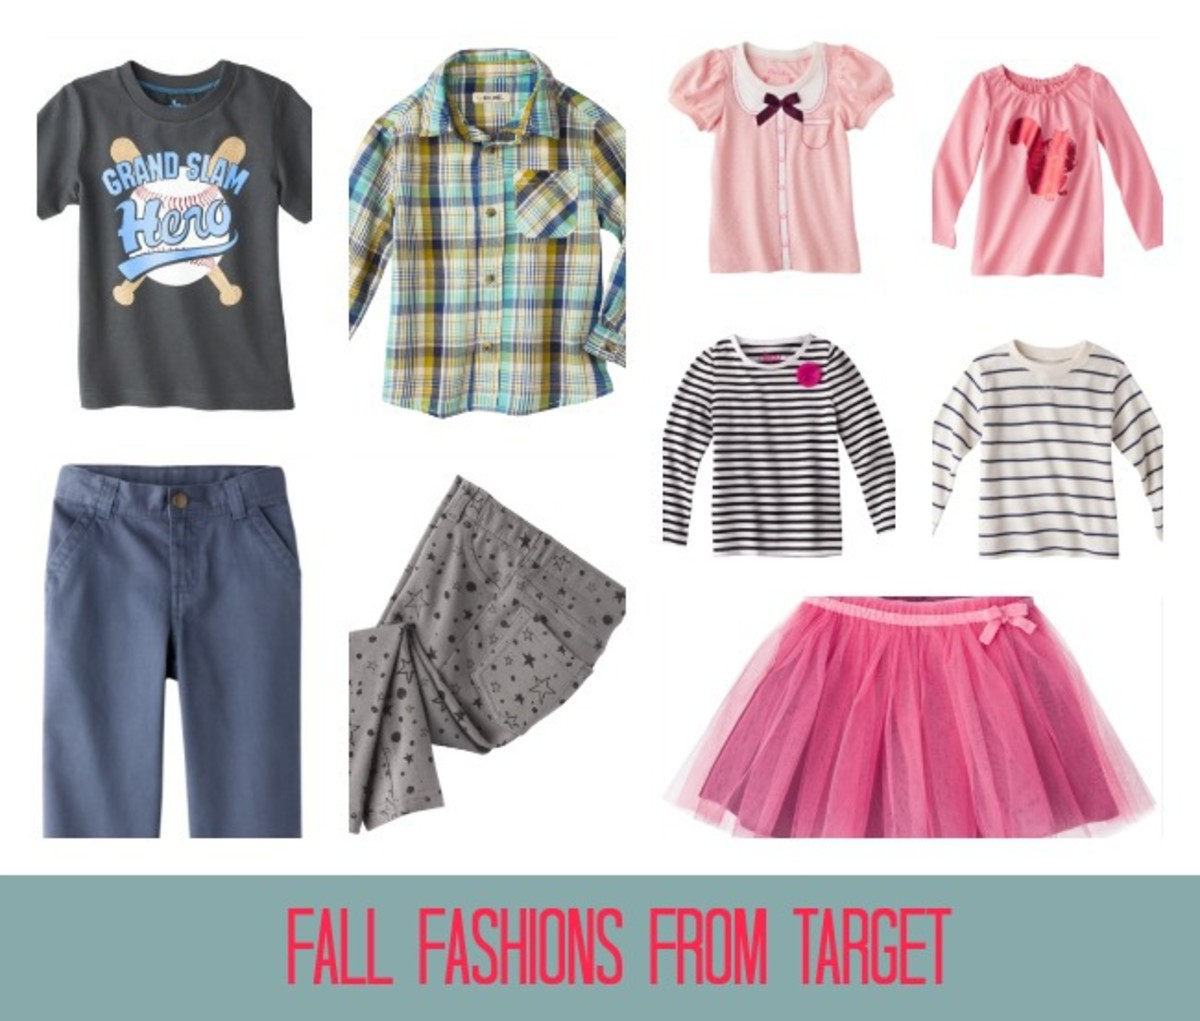 Target Fashions, Target Fashions for Kids